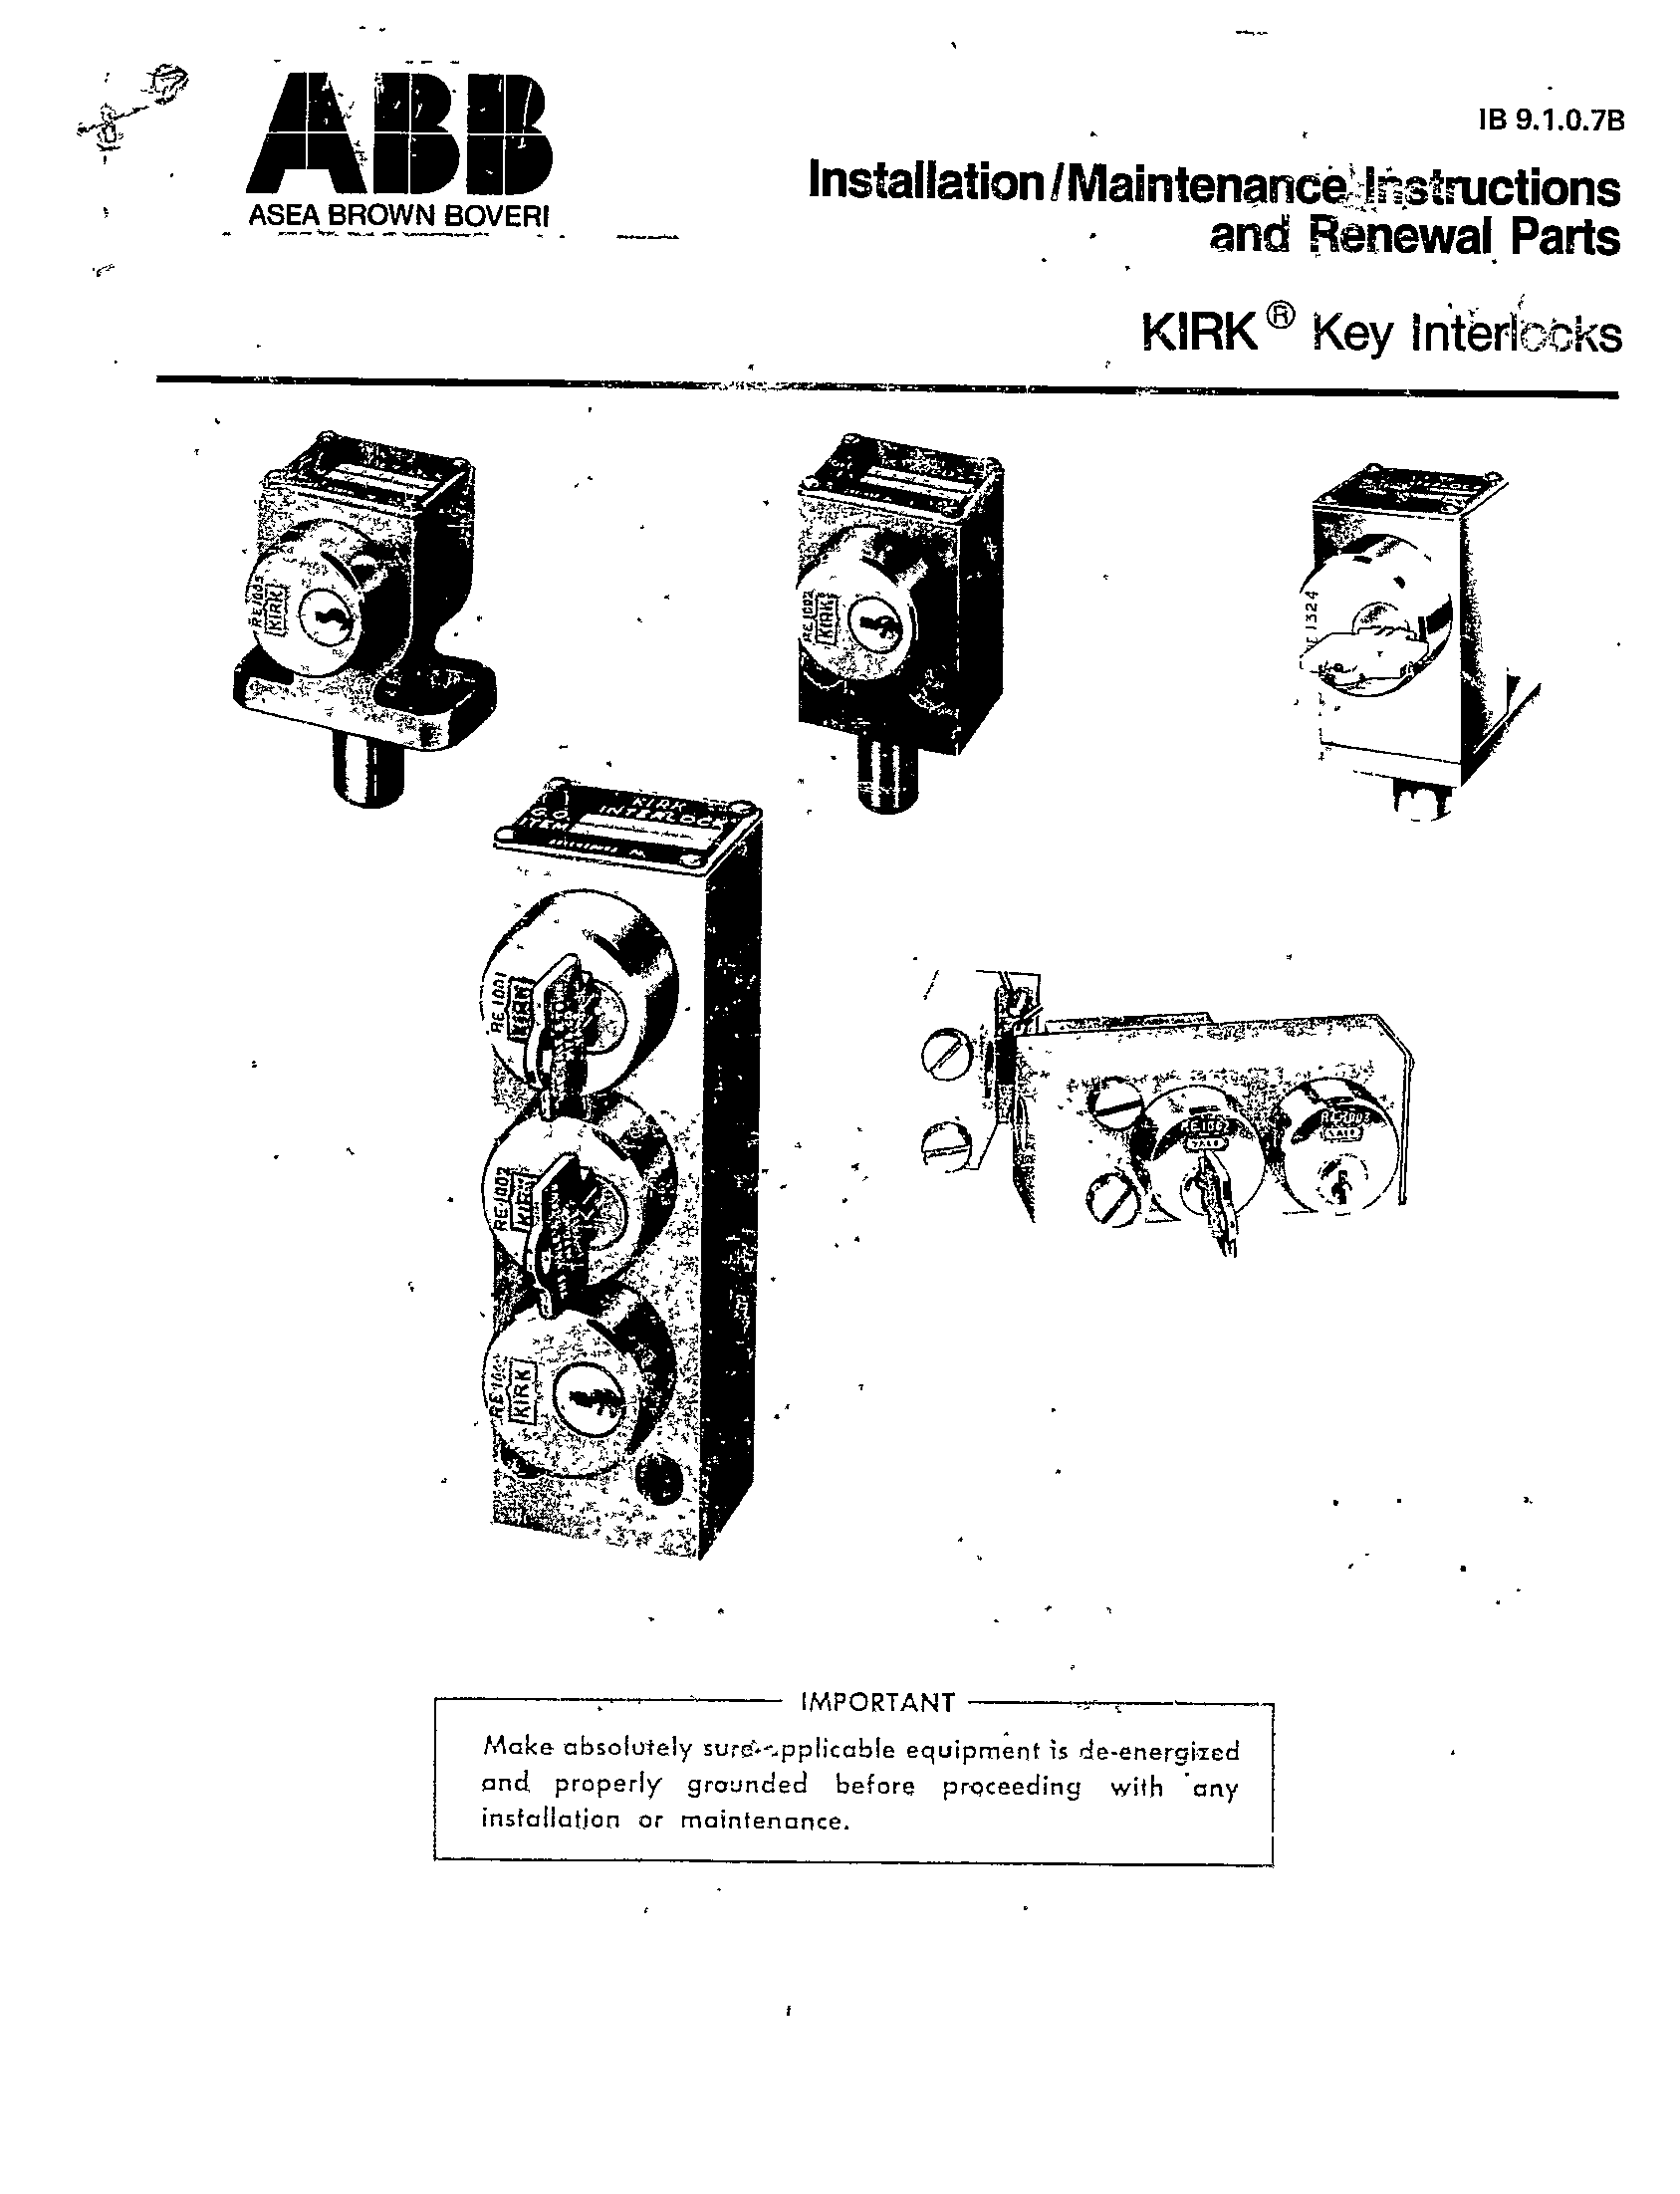 Cutler Hammer Kirk Key Operating Instructions